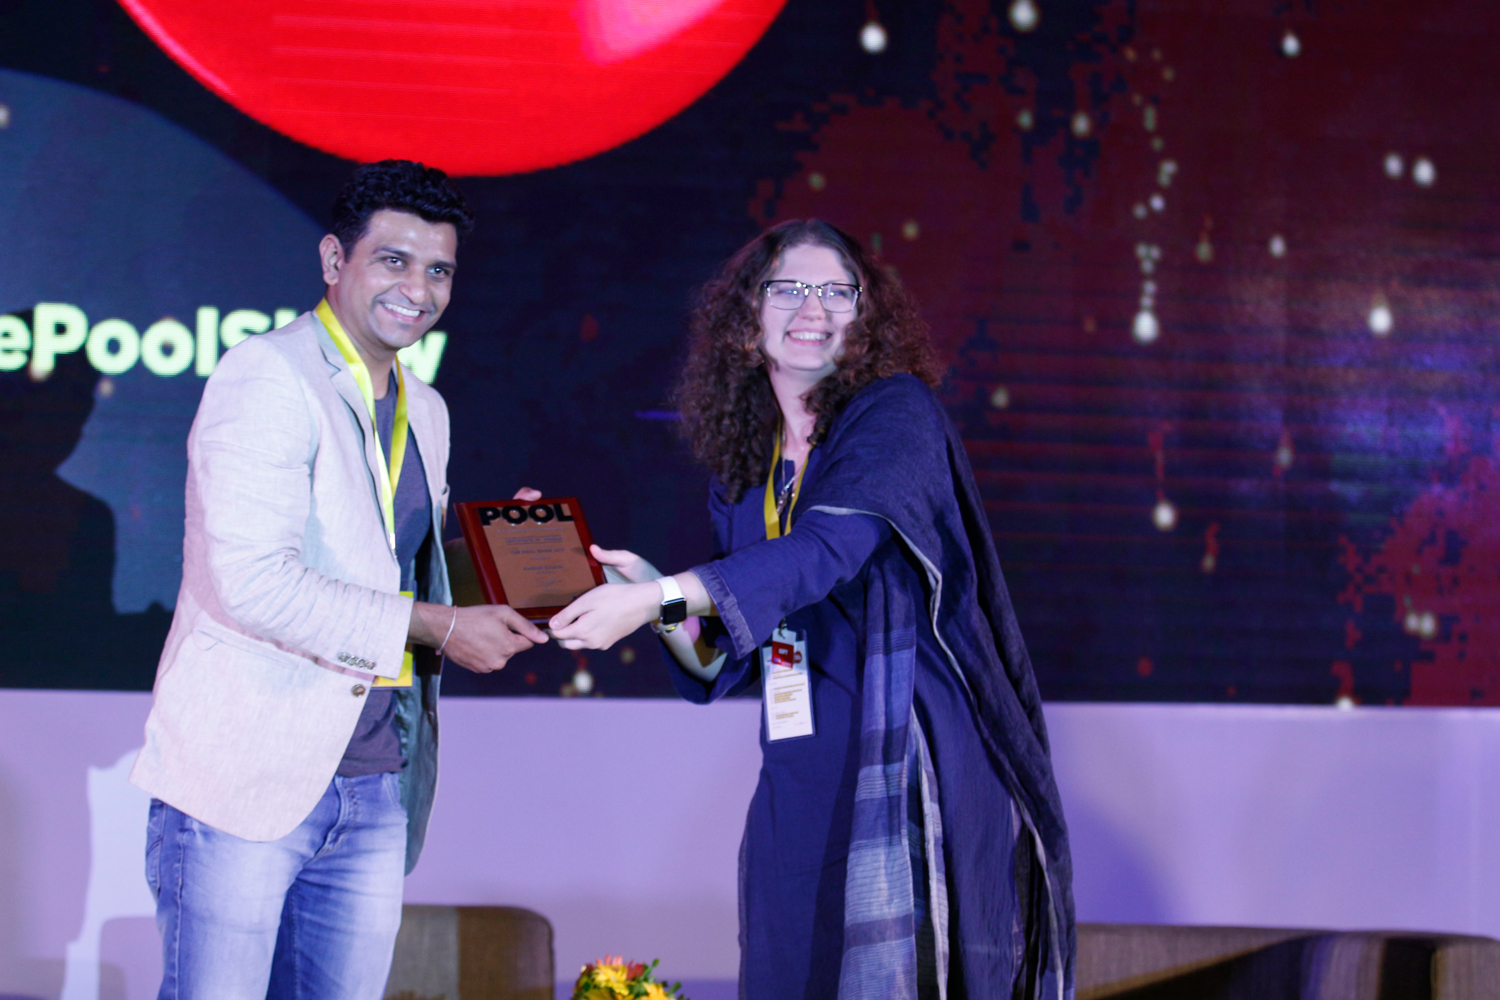 Hari Nallan, and Aashish Solanki, receive mementos from Marianna Sharma, Head Strategist at INDI Design, and Digital and Design at POOL Magazine.